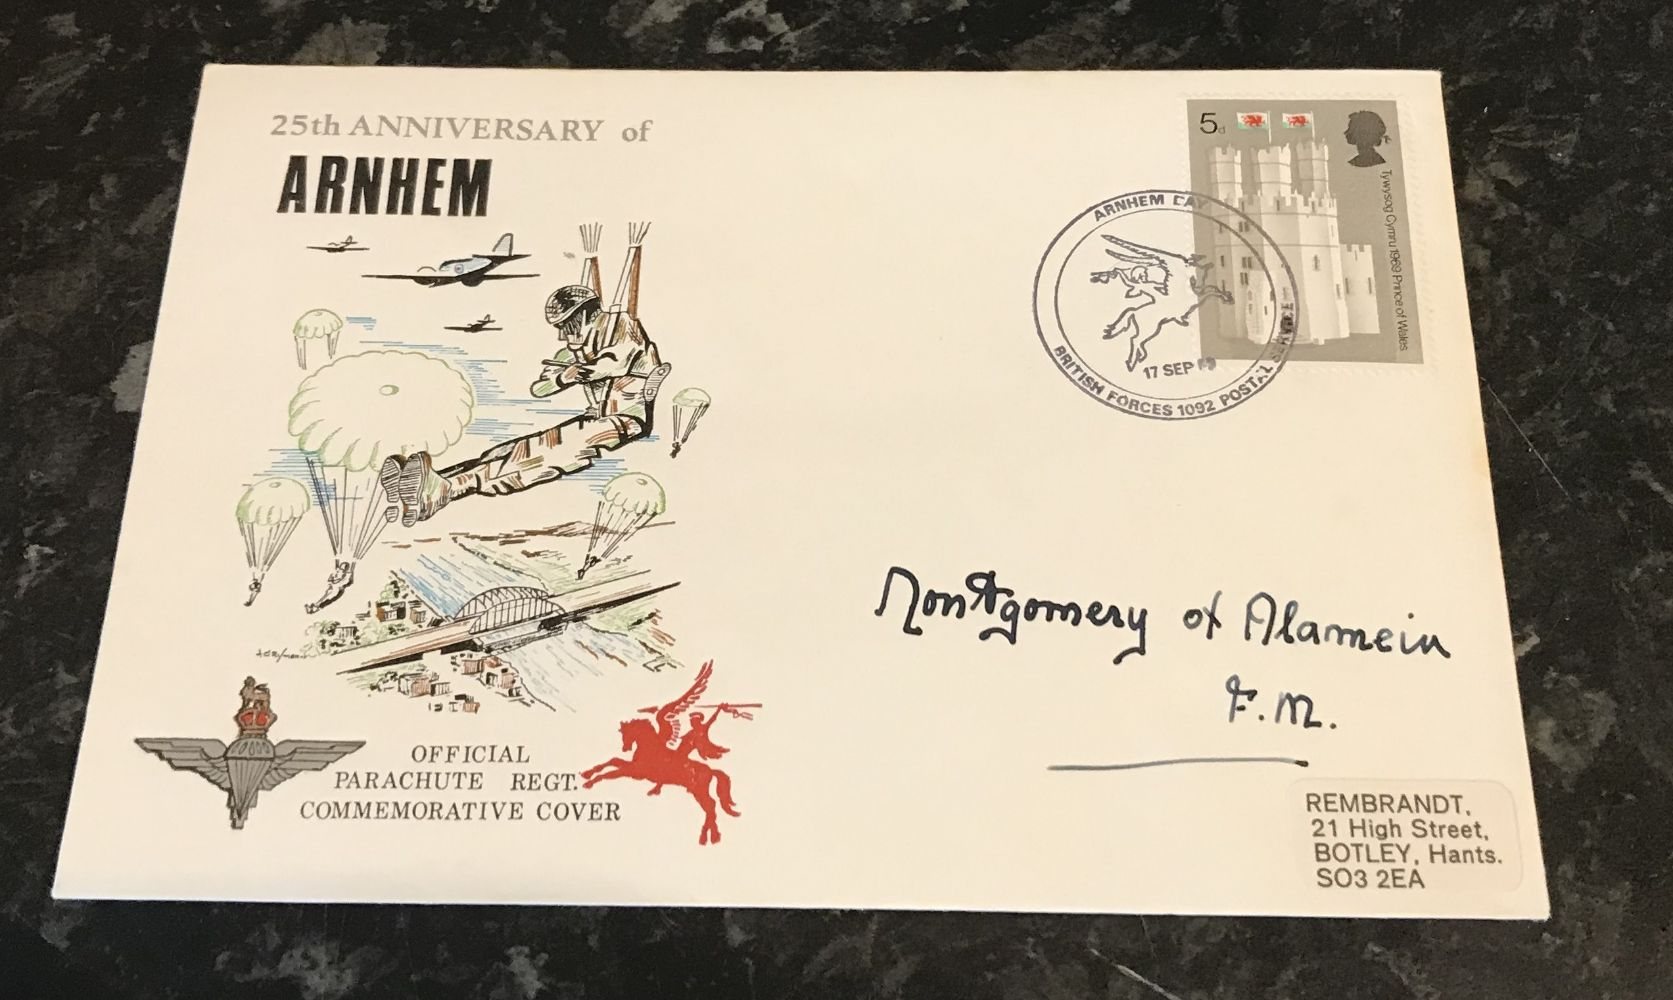 Autograph Auction Military WW2 Robert Taylor Prints Dambusters Luftwaffe BOB Bomber Aces